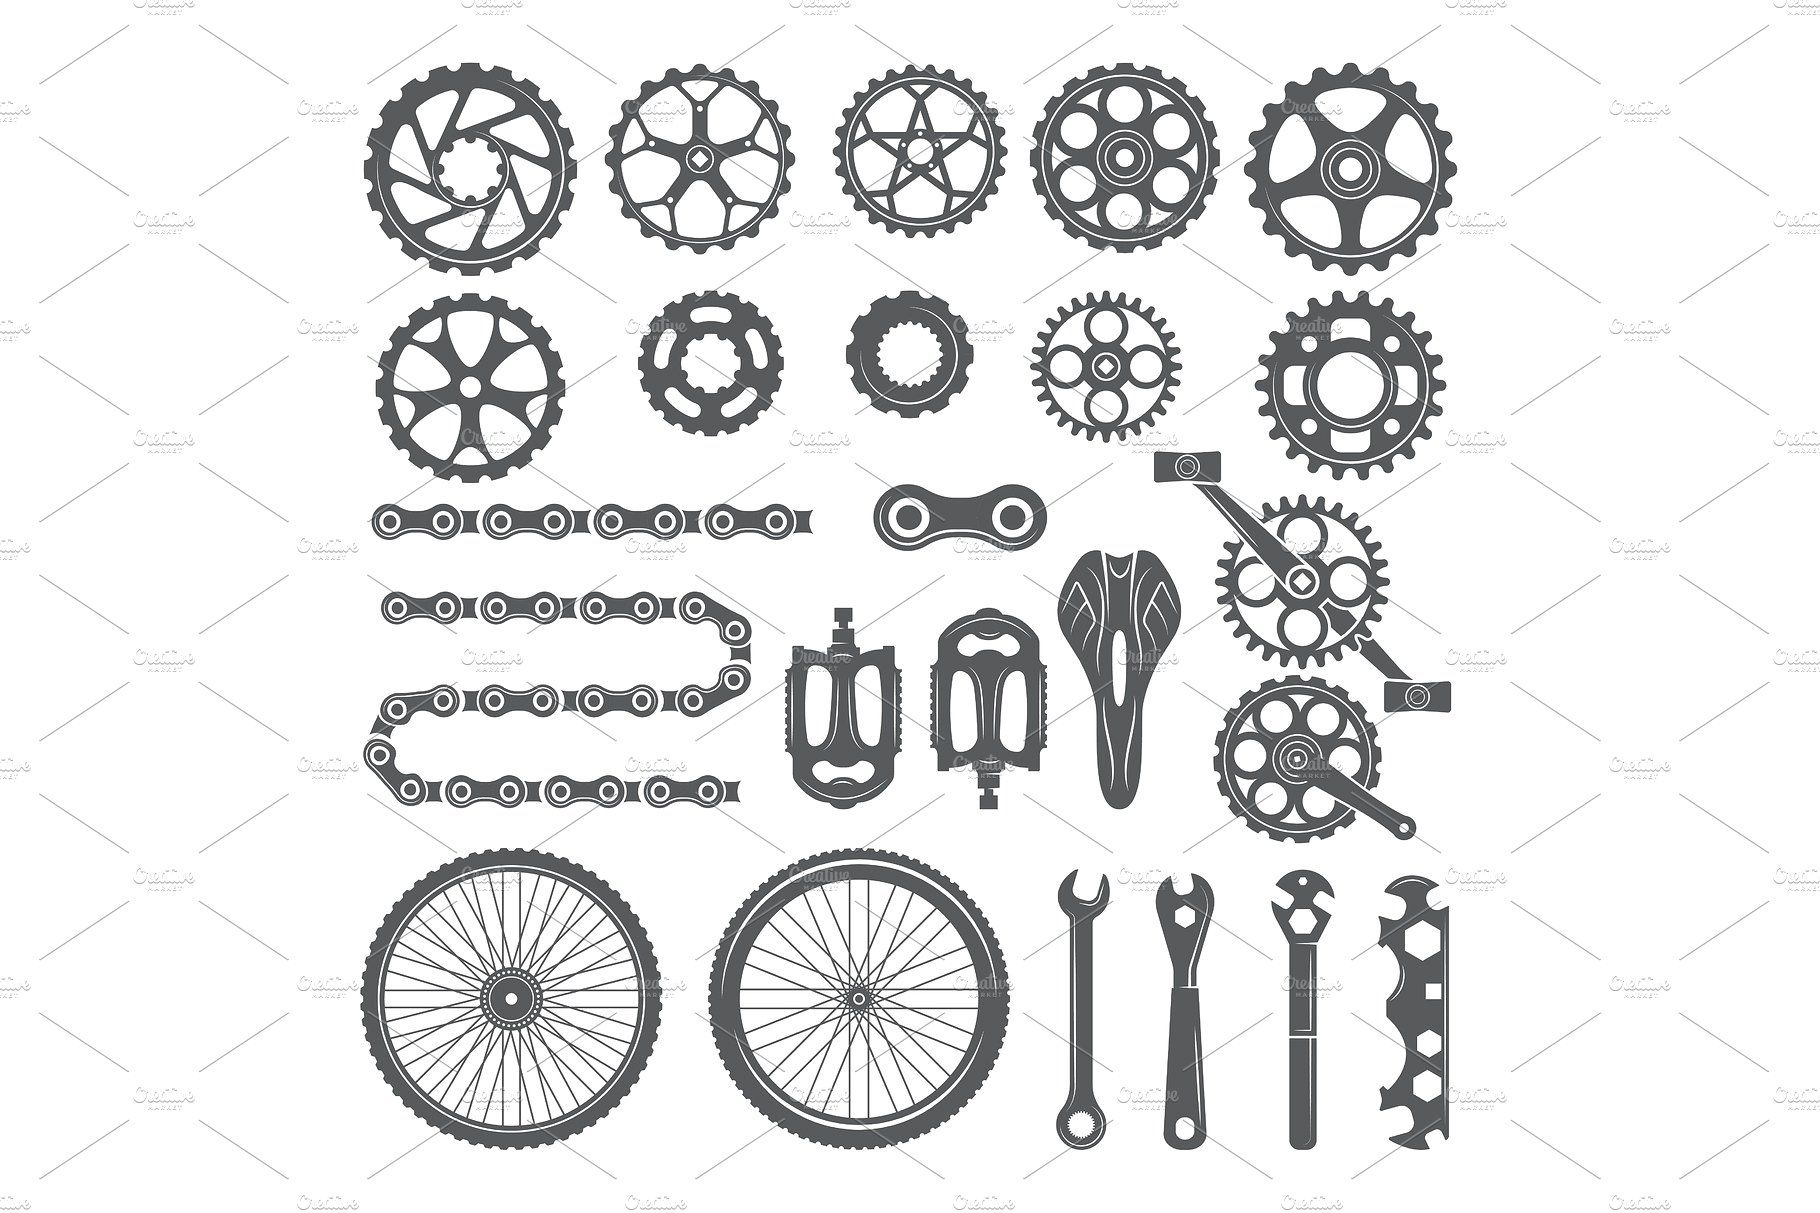 Gears Chains Wheels And Other Different Parts Of Bicycle Gear